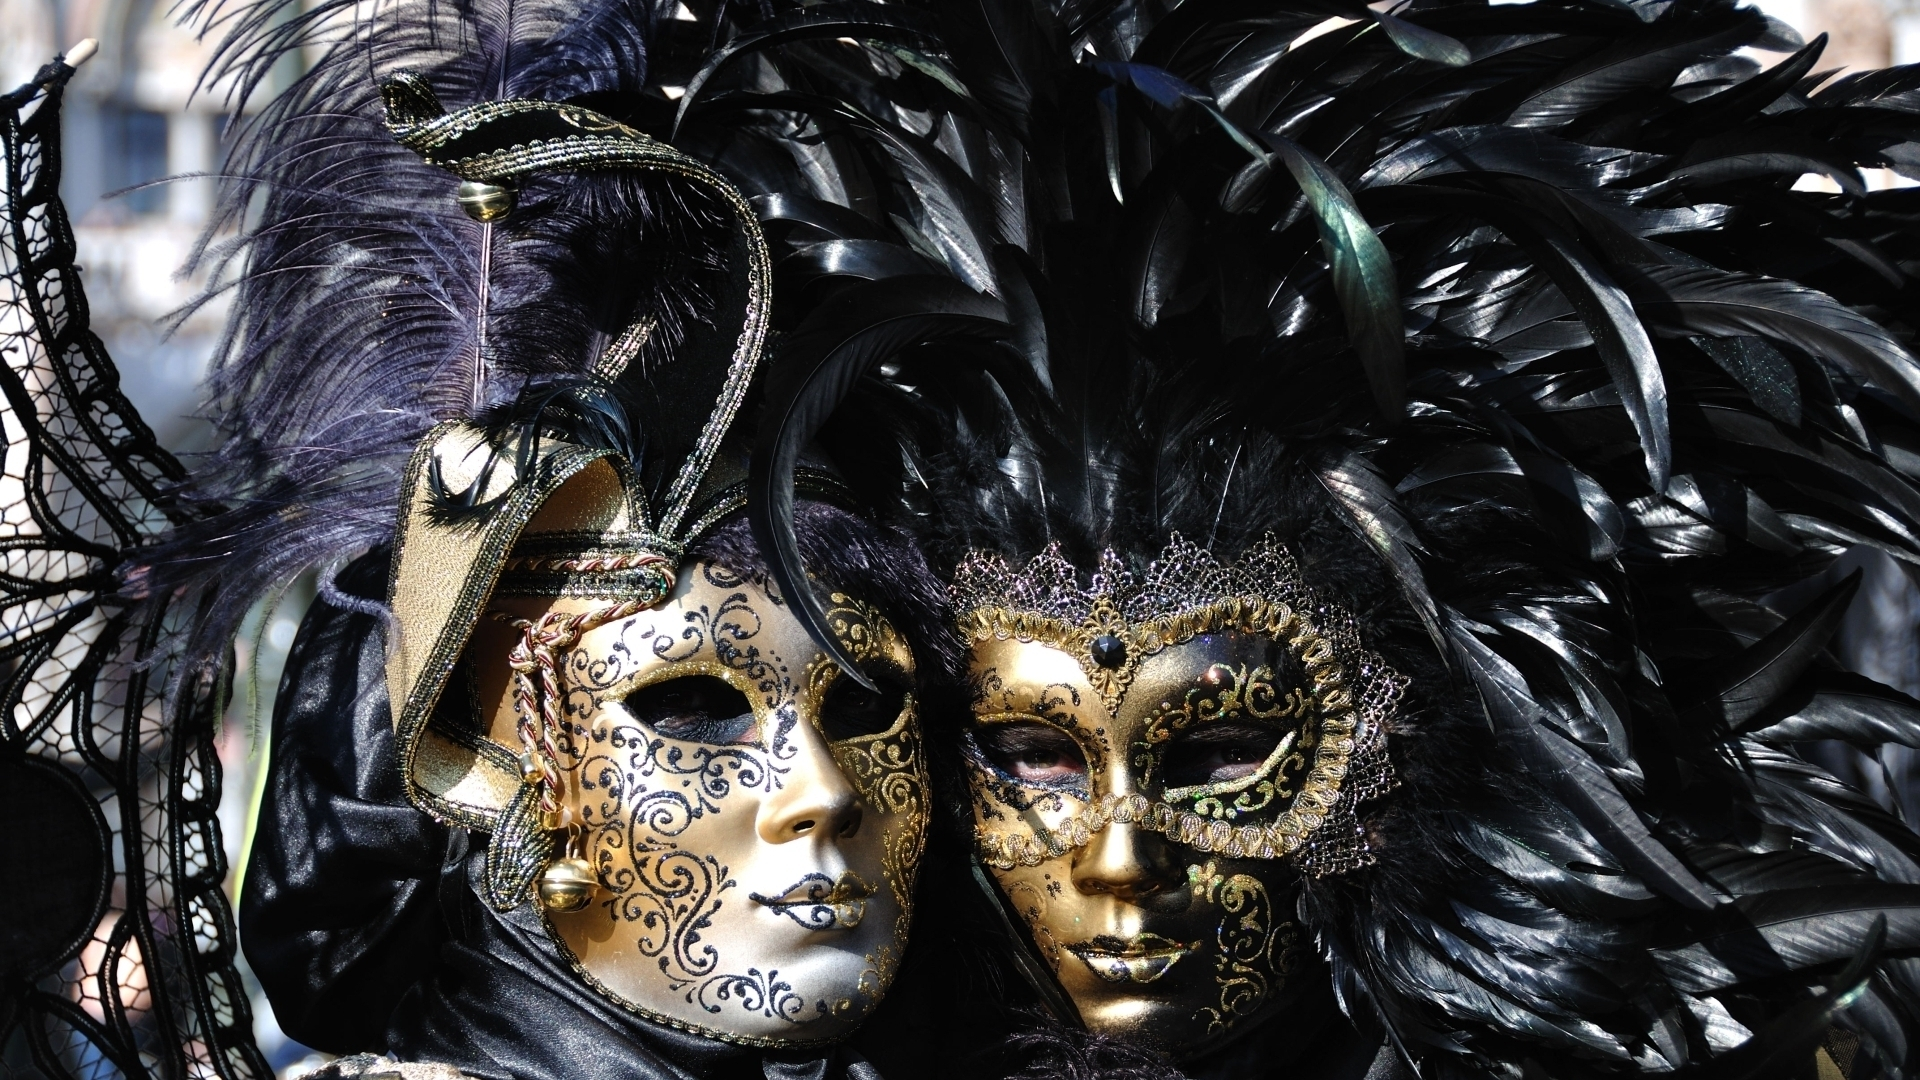 Venice Carnival Masks for 1920 x 1080 HDTV 1080p resolution